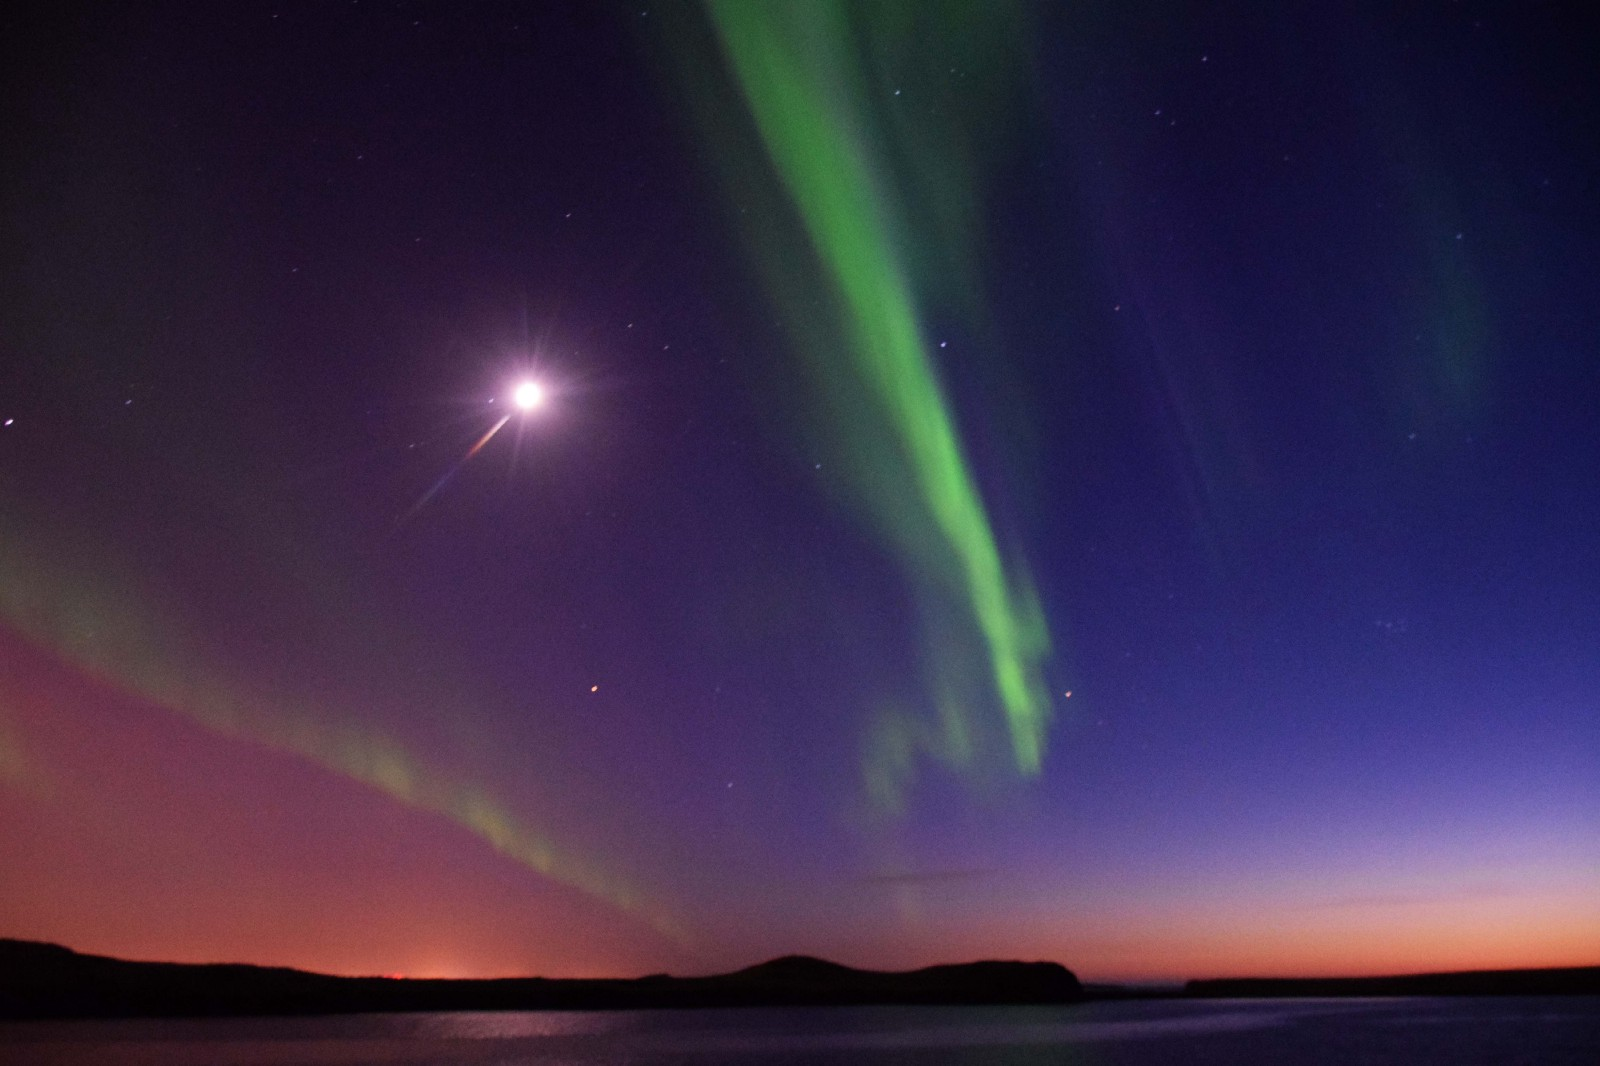 Northern Lights Happen All Year Round BUT You Need The Darkness To See  Them, This Is Why They Are Only Visible During The Darker Months Of The  Year.